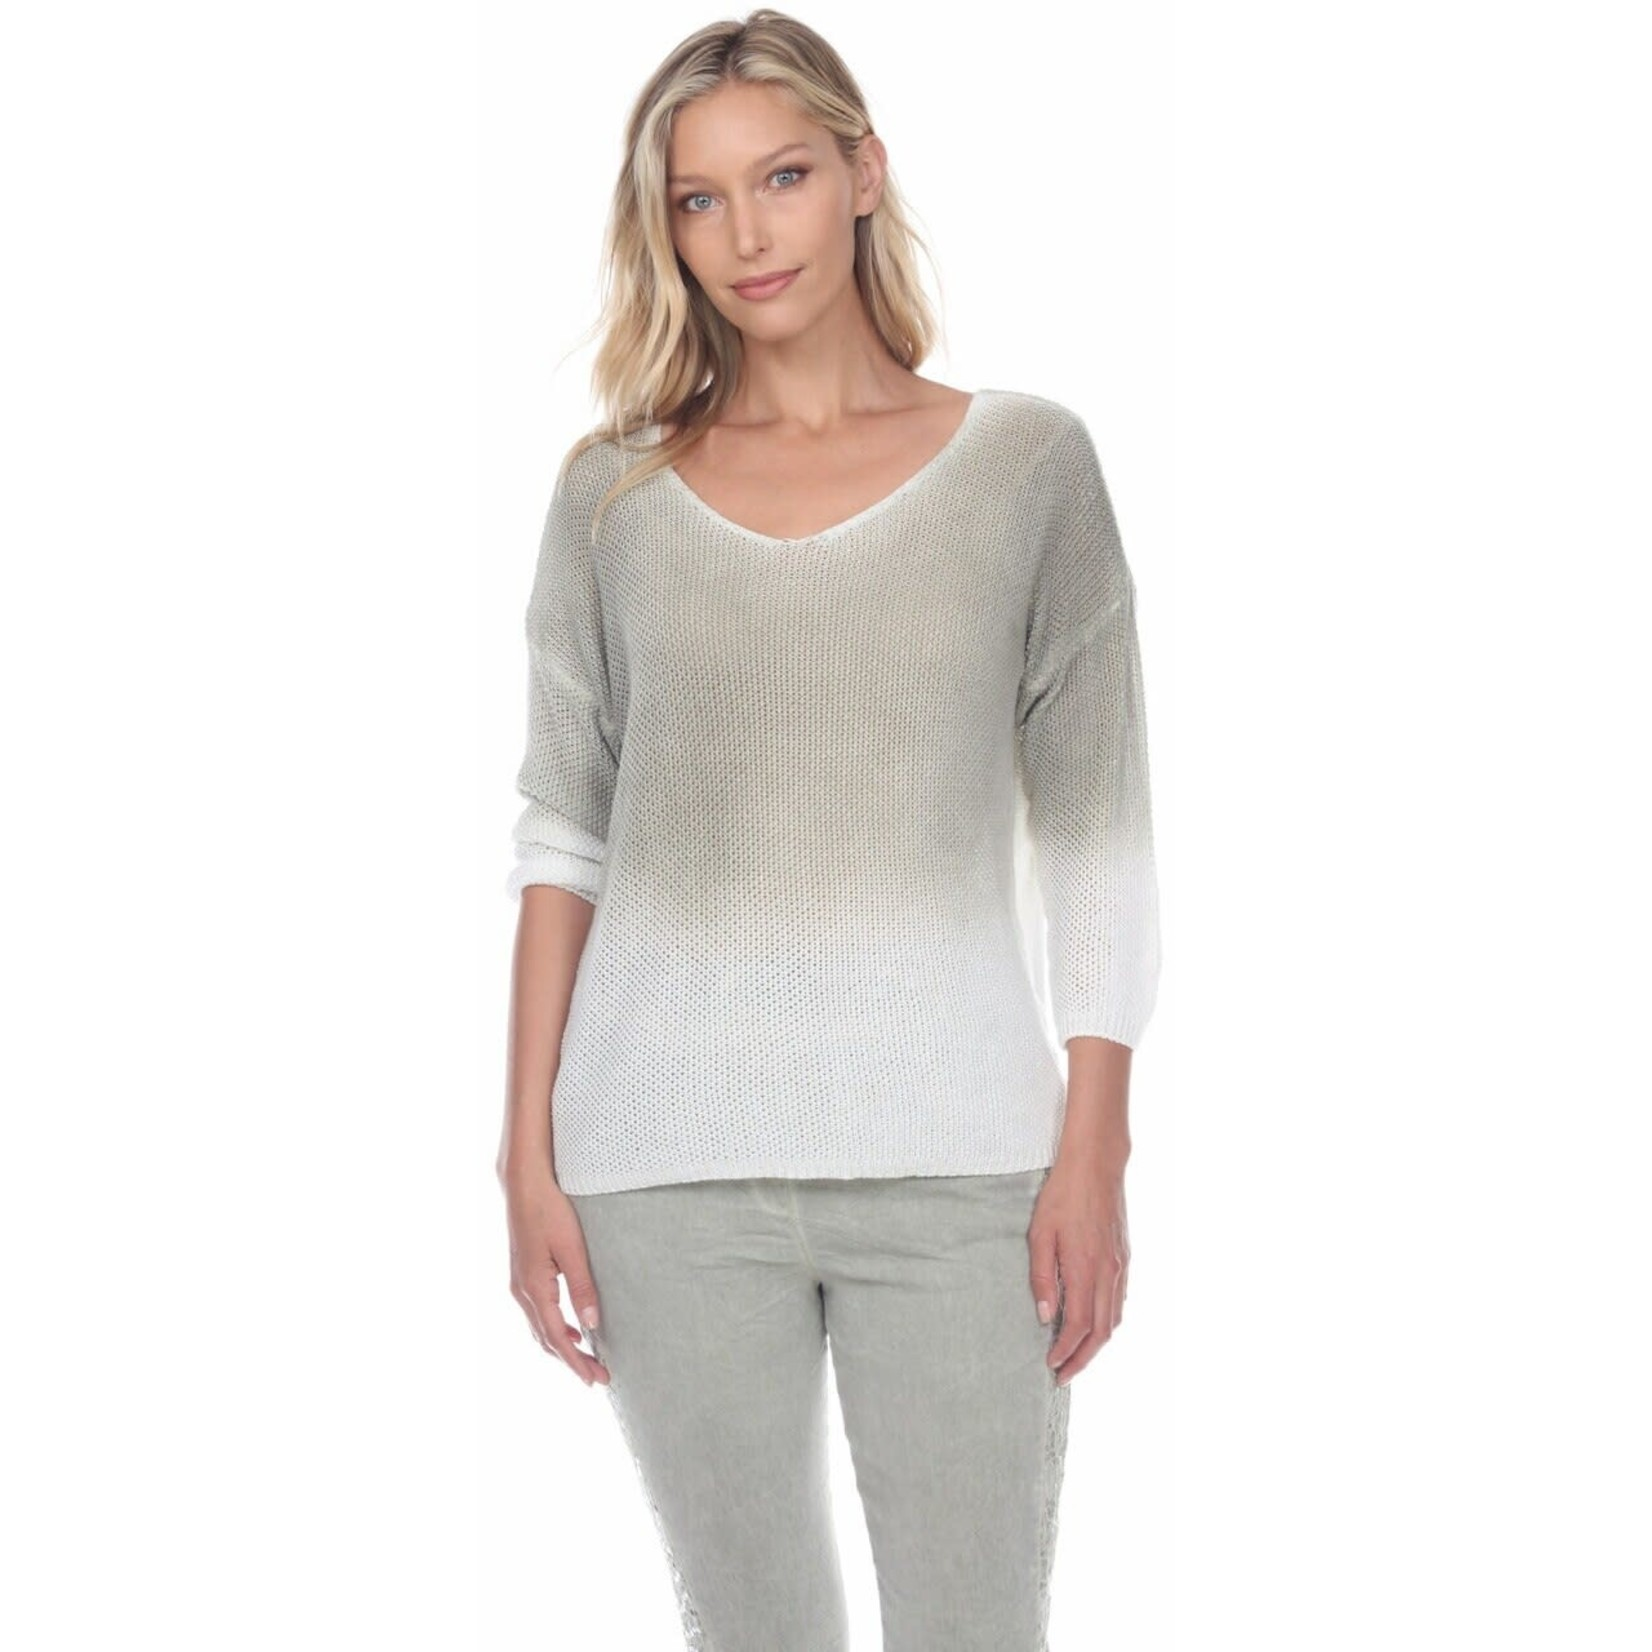 Flora Ashley Sage and Off-white Ombre Waffle Knit Sweater